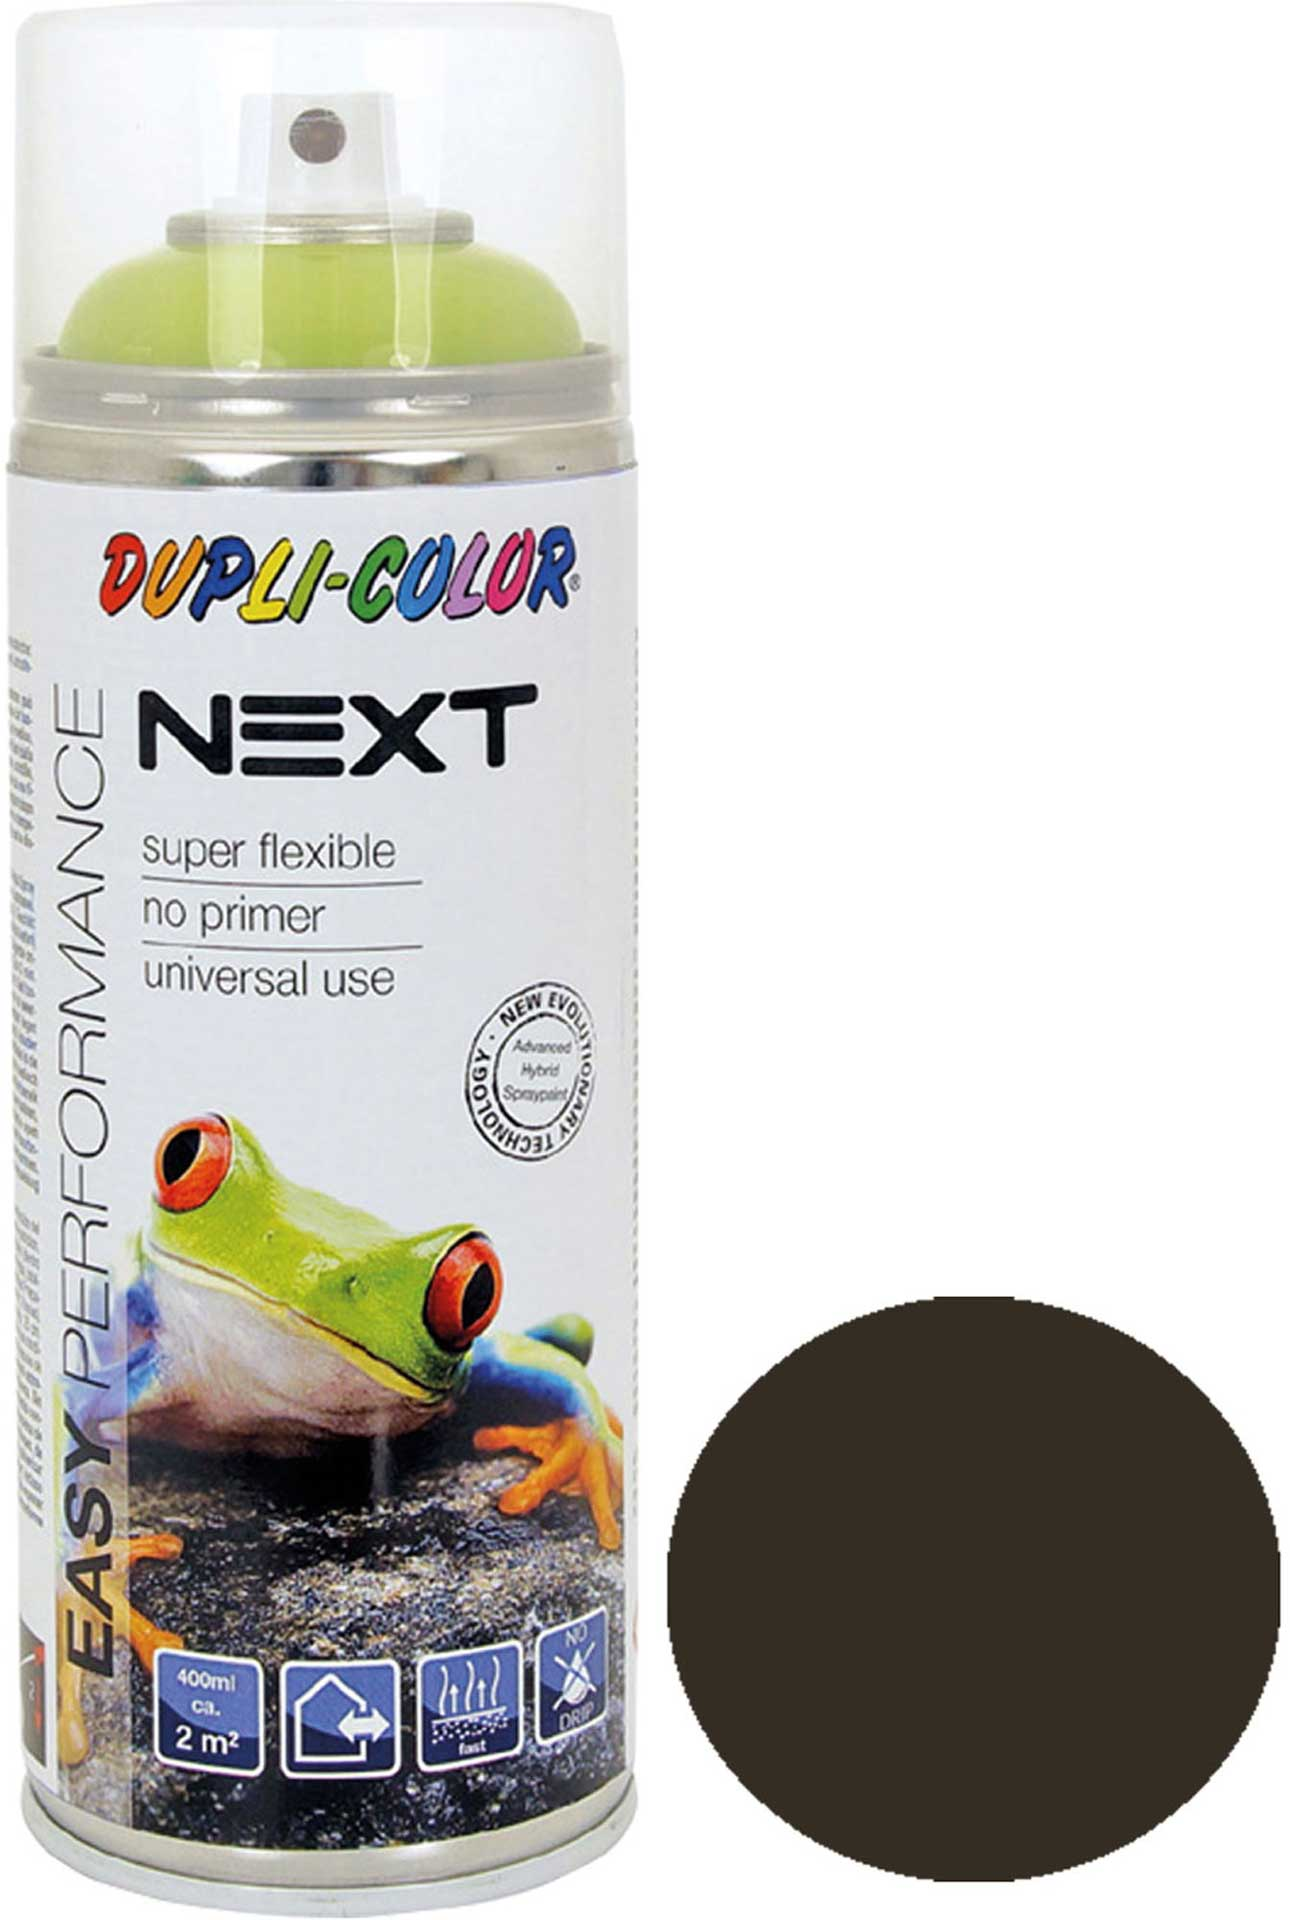 DUPLI-COLOR NEXT ZAGREB OLIVE SDM. 400ML SPRAY PAINT